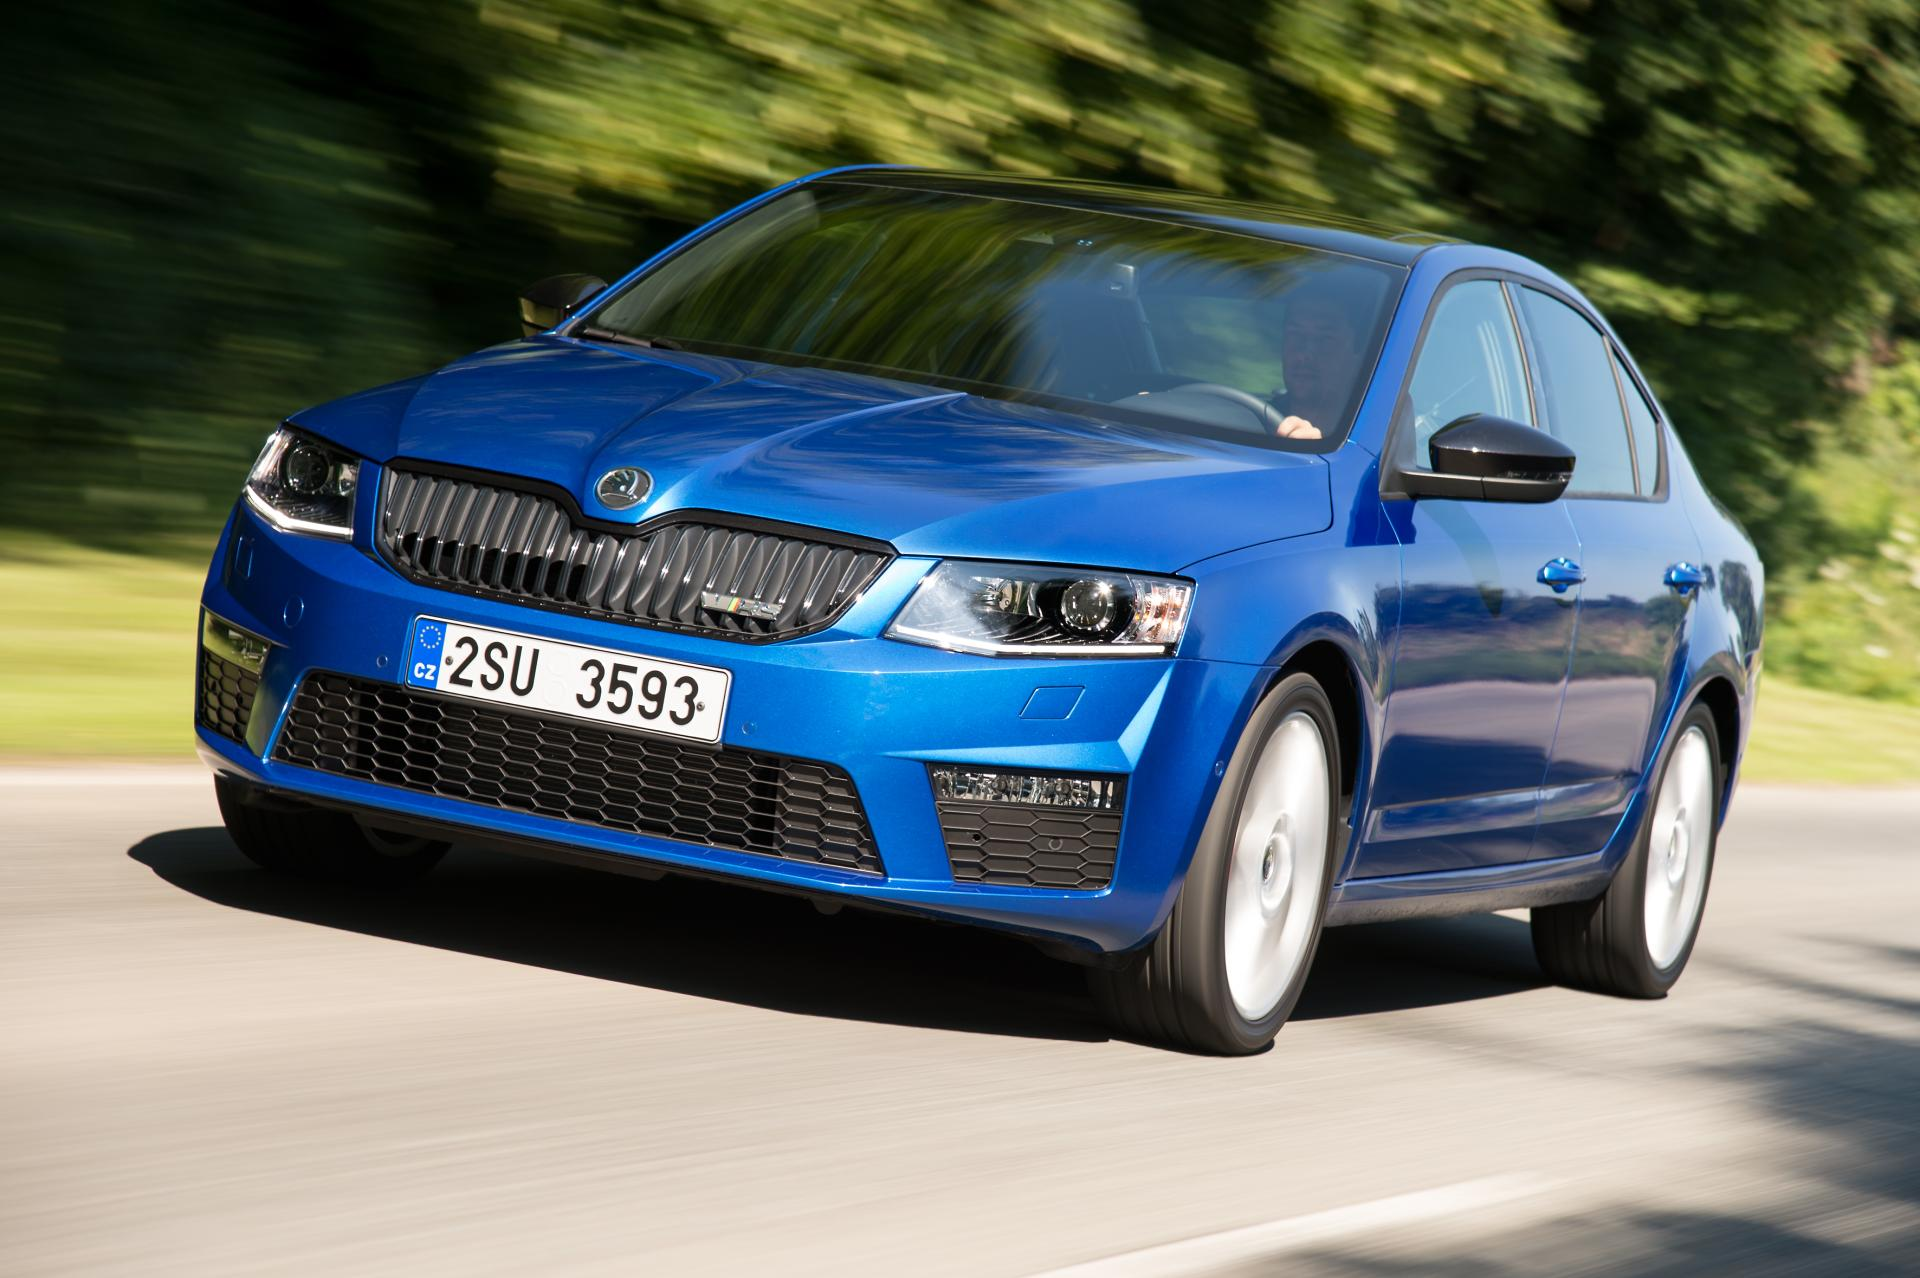 2014 skoda octavia rs news and information. Black Bedroom Furniture Sets. Home Design Ideas